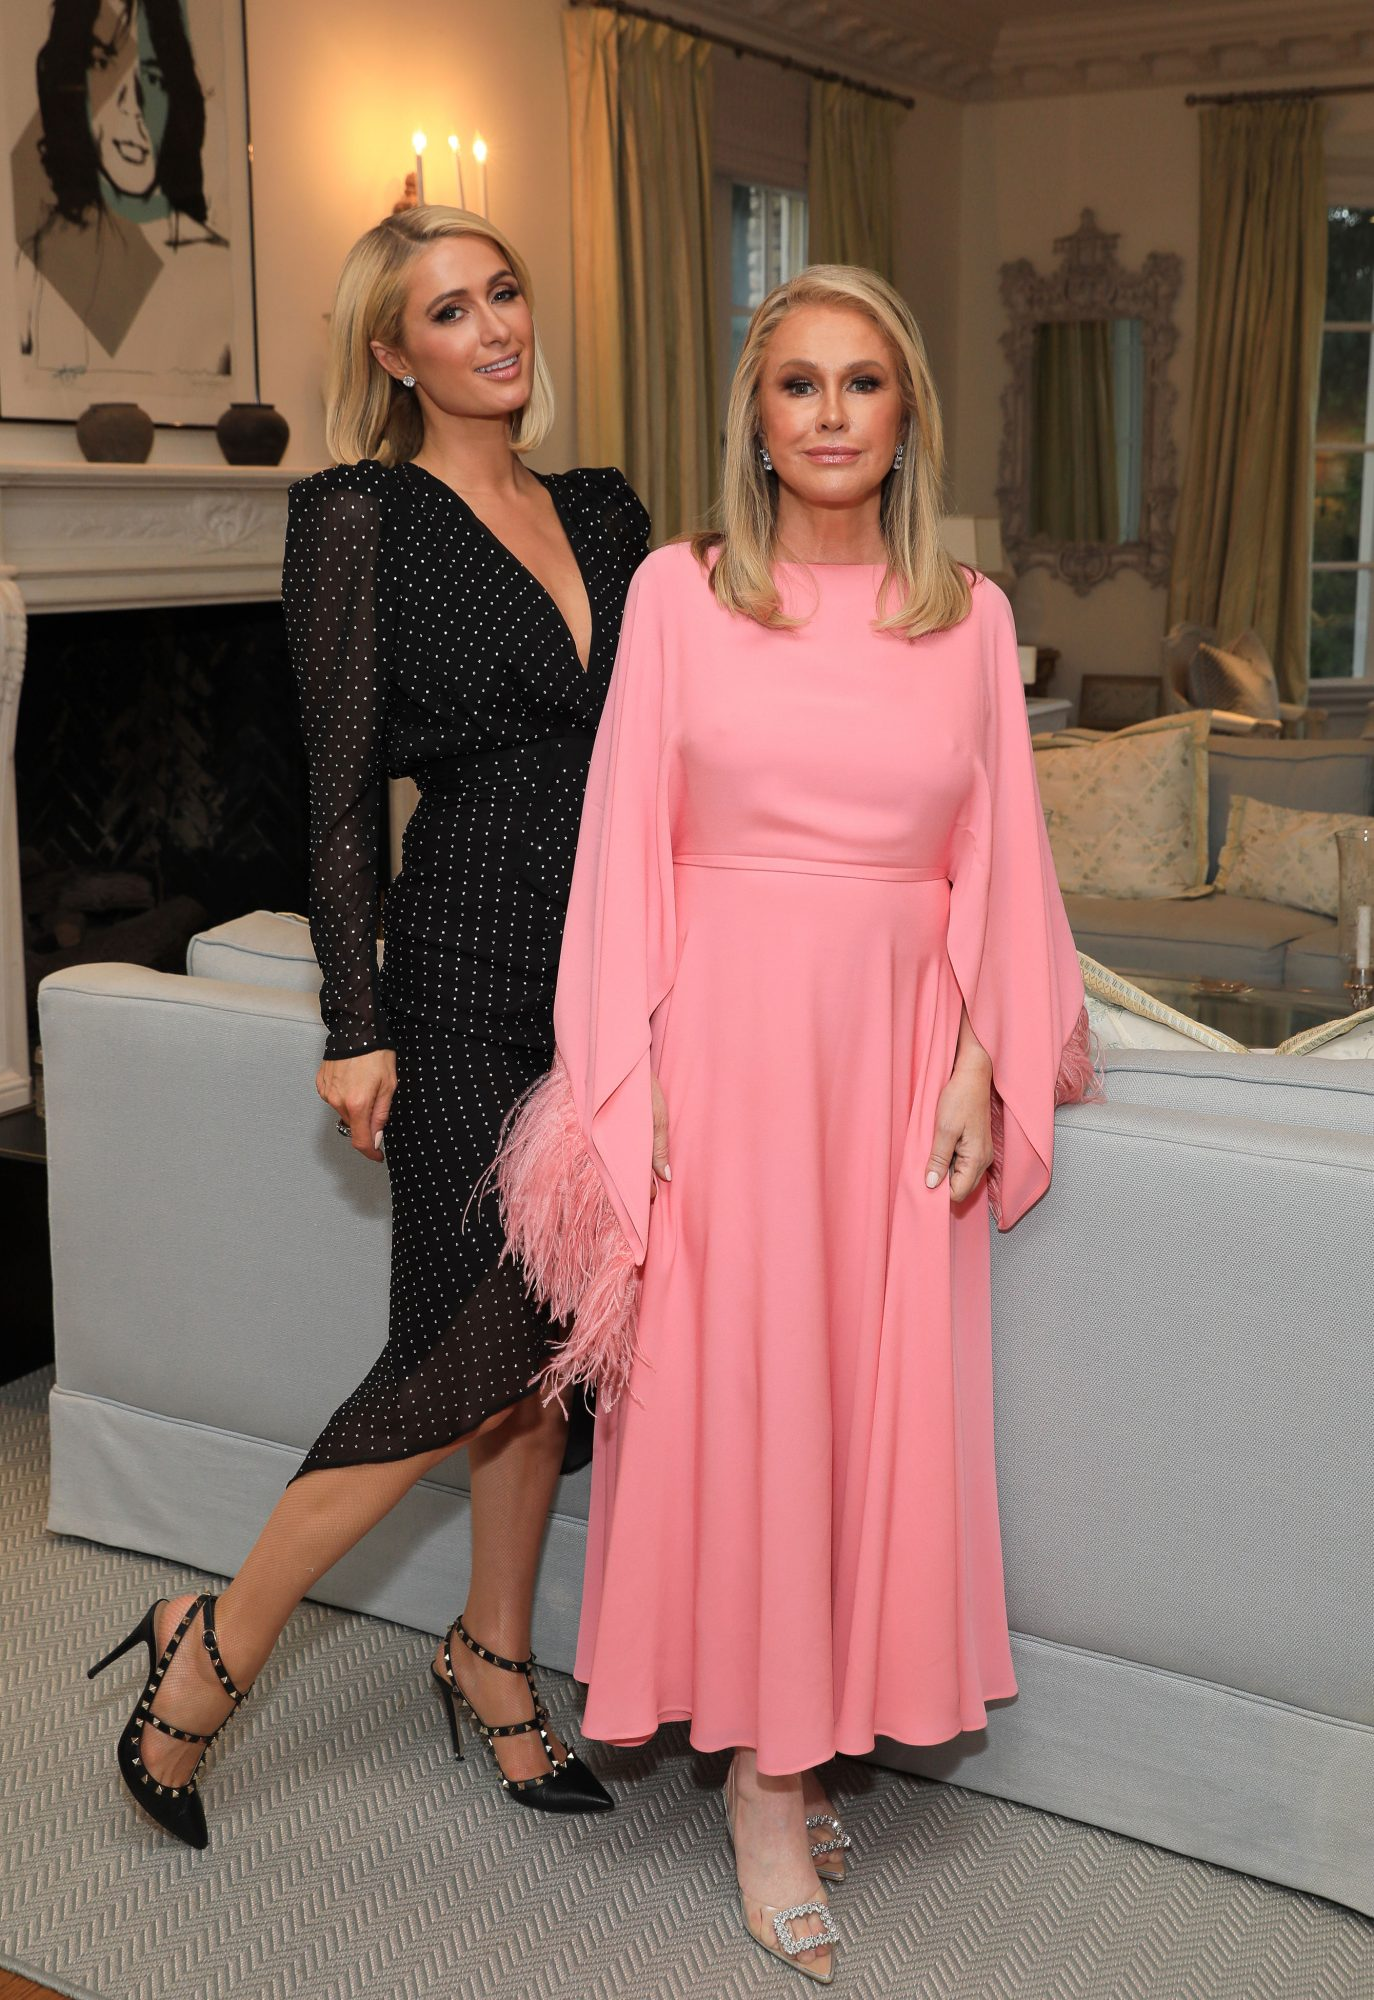 Pink Mogul Cindy Eckert Fetes RHOBH's Kathy Hilton with a Private Viewing Party